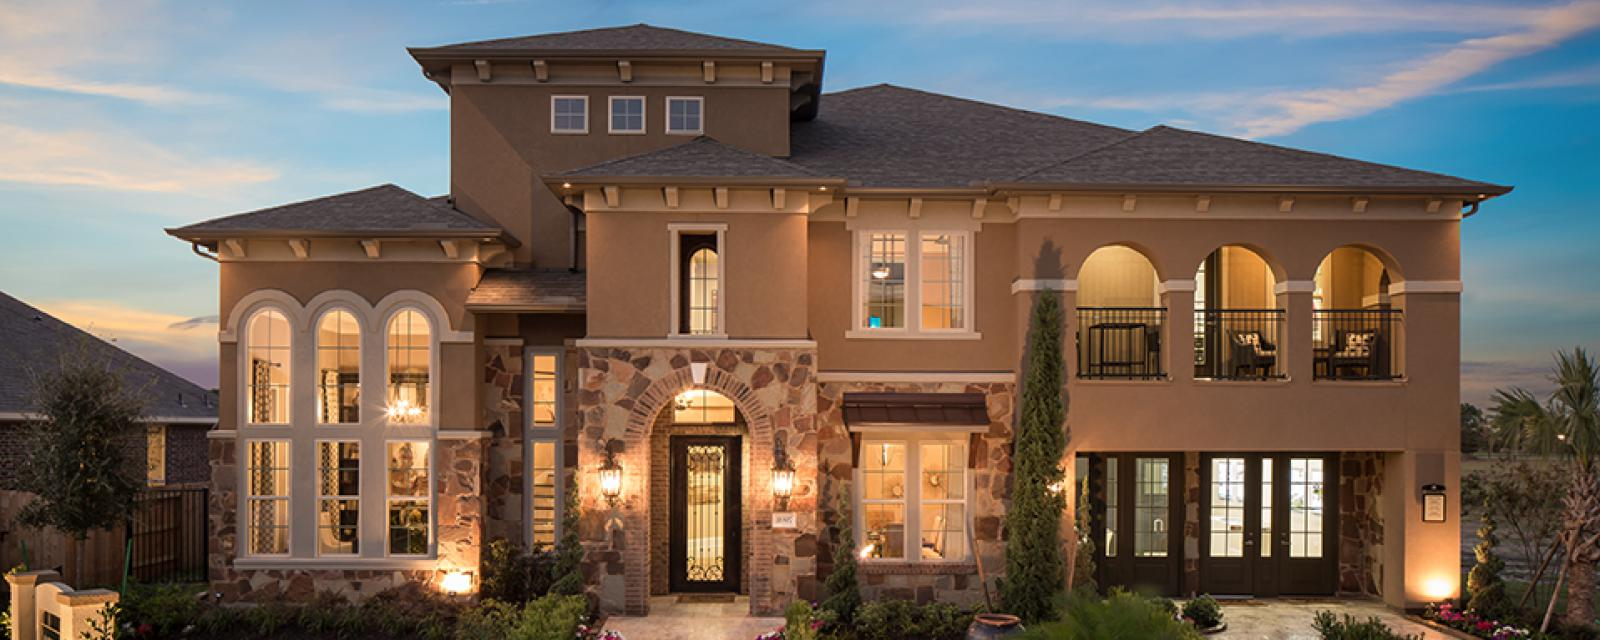 Bellagio New Home Plan For Hidden Lakes 80ft Community In